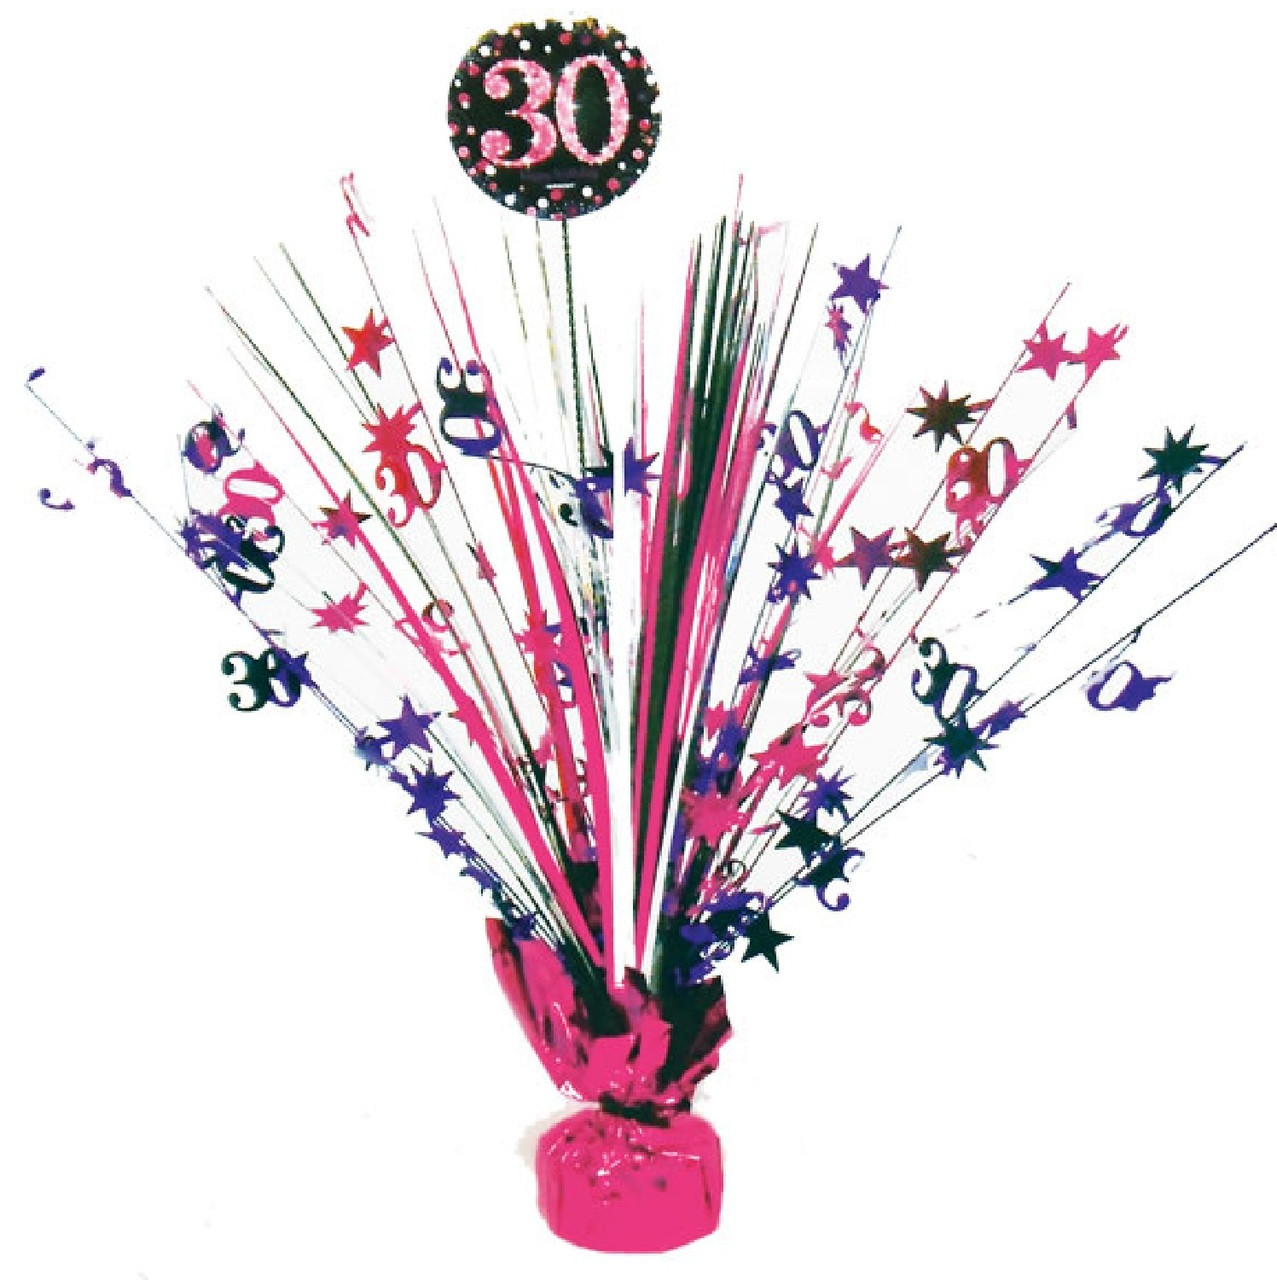 30th Birthday Pink Celebration Table Centerpiece Image 1